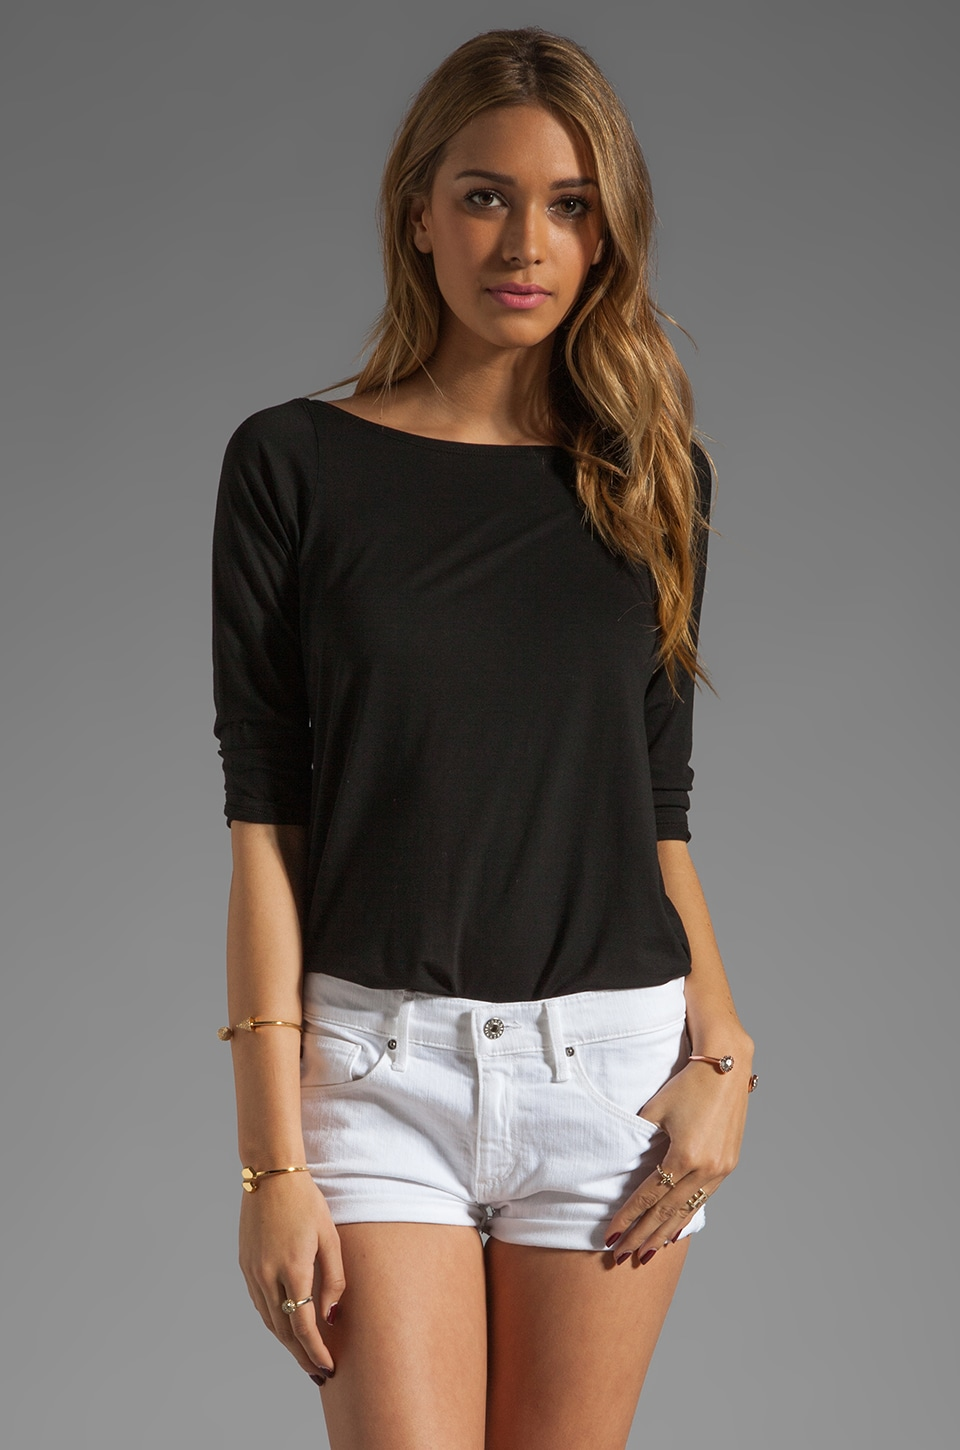 Feel the Piece Frenchie Boat Neck Top in Black